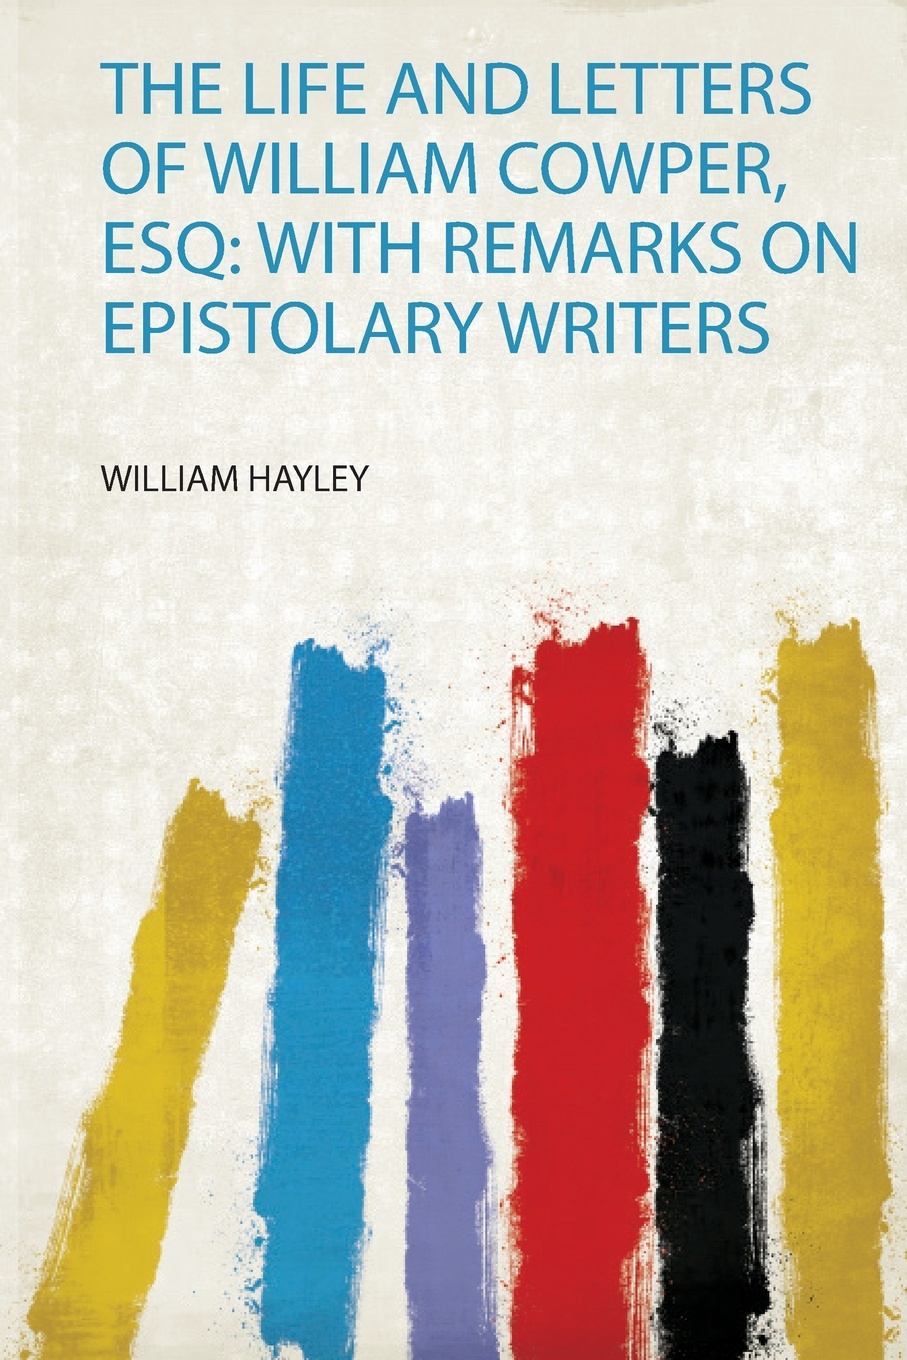 The Life and Letters of William Cowper, Esq. With Remarks on Epistolary Writers